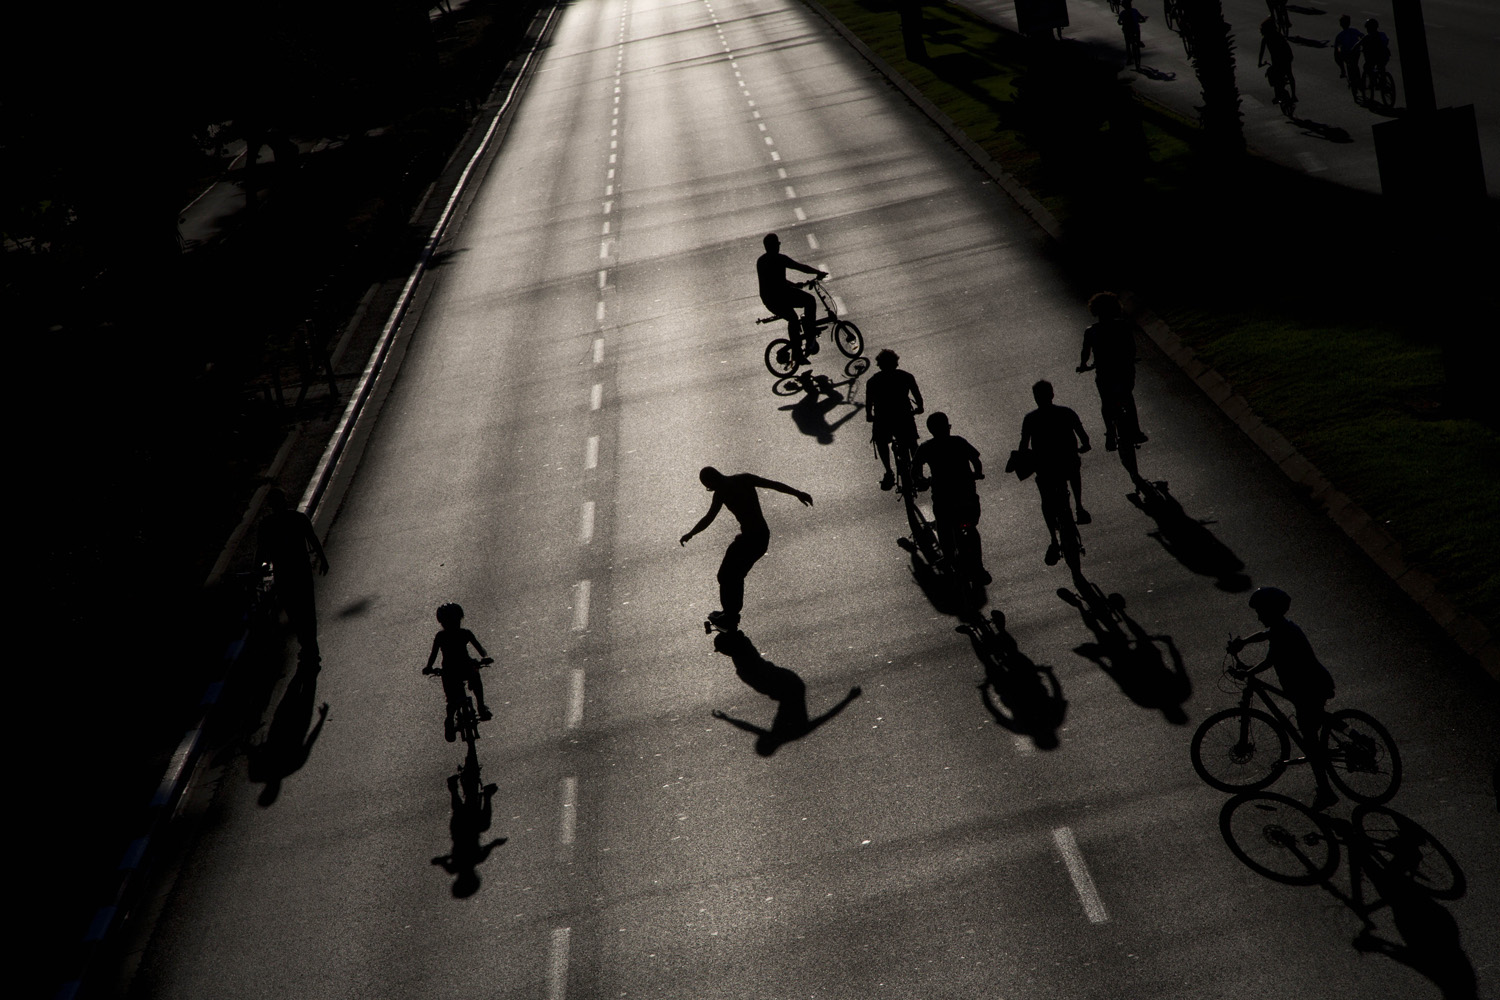 Israelis ride their bicycles and skateboards on a car-free highway, during the holiday of Yom Kippur in Tel Aviv, Oct 4. 2014.